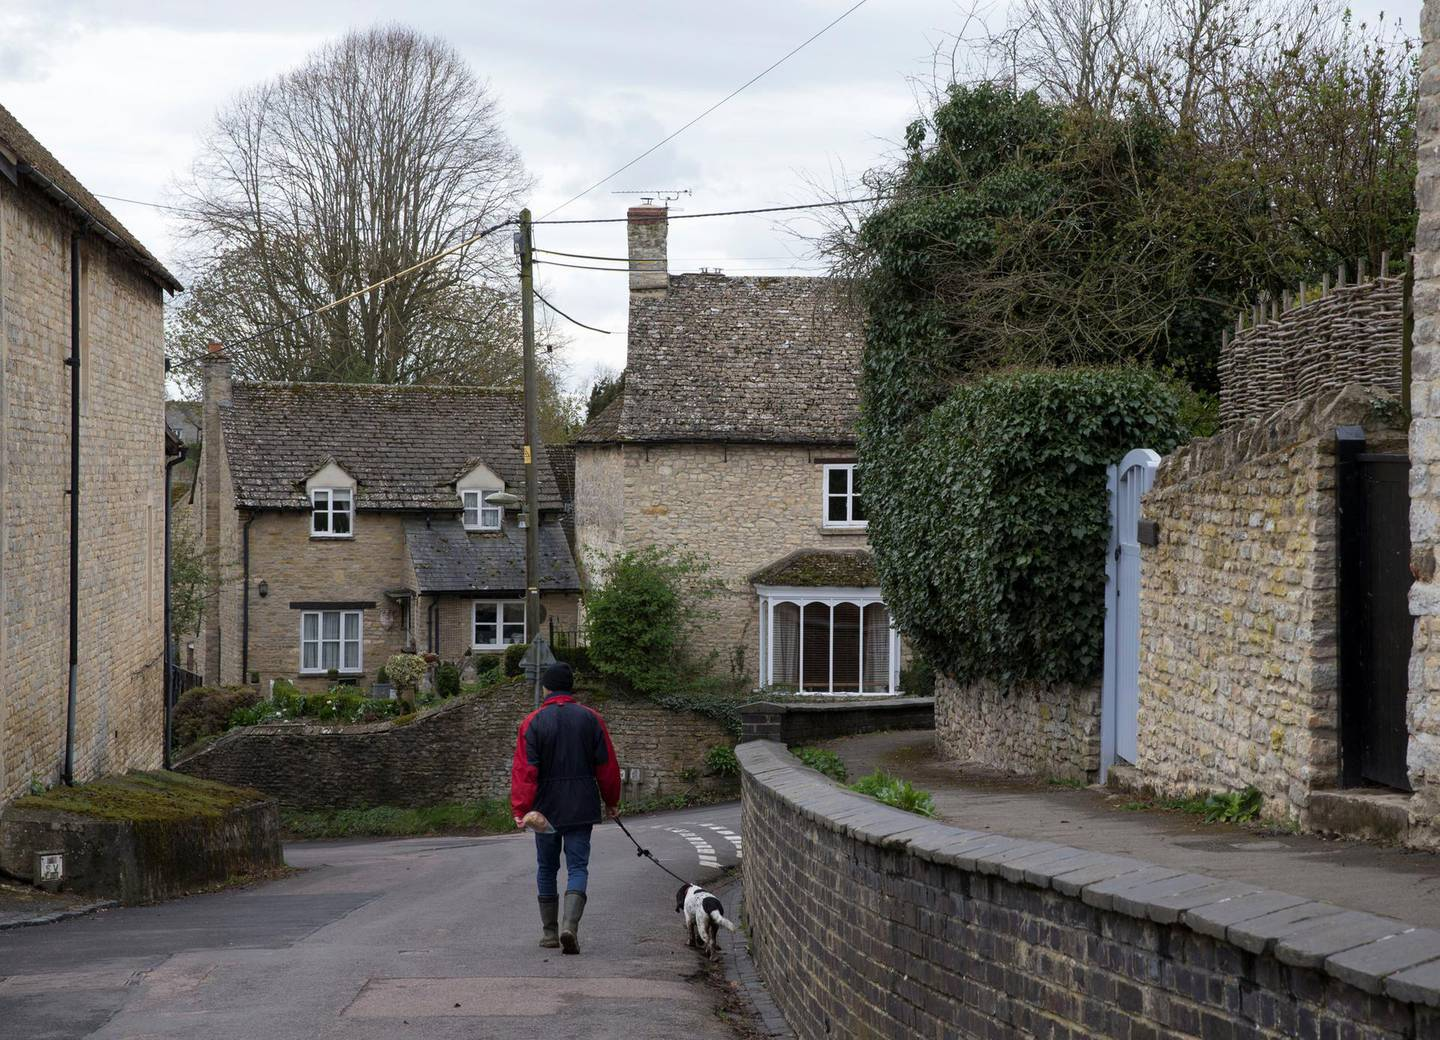 WOOTTON, OXFORDSHIRE, UK. 5th April 2019. The village of Wootton, United Kingdom, where businessman Arif Naqvi has his Wootton Place estate.  Stephen Lock for the National . Words: Paul Peachey.